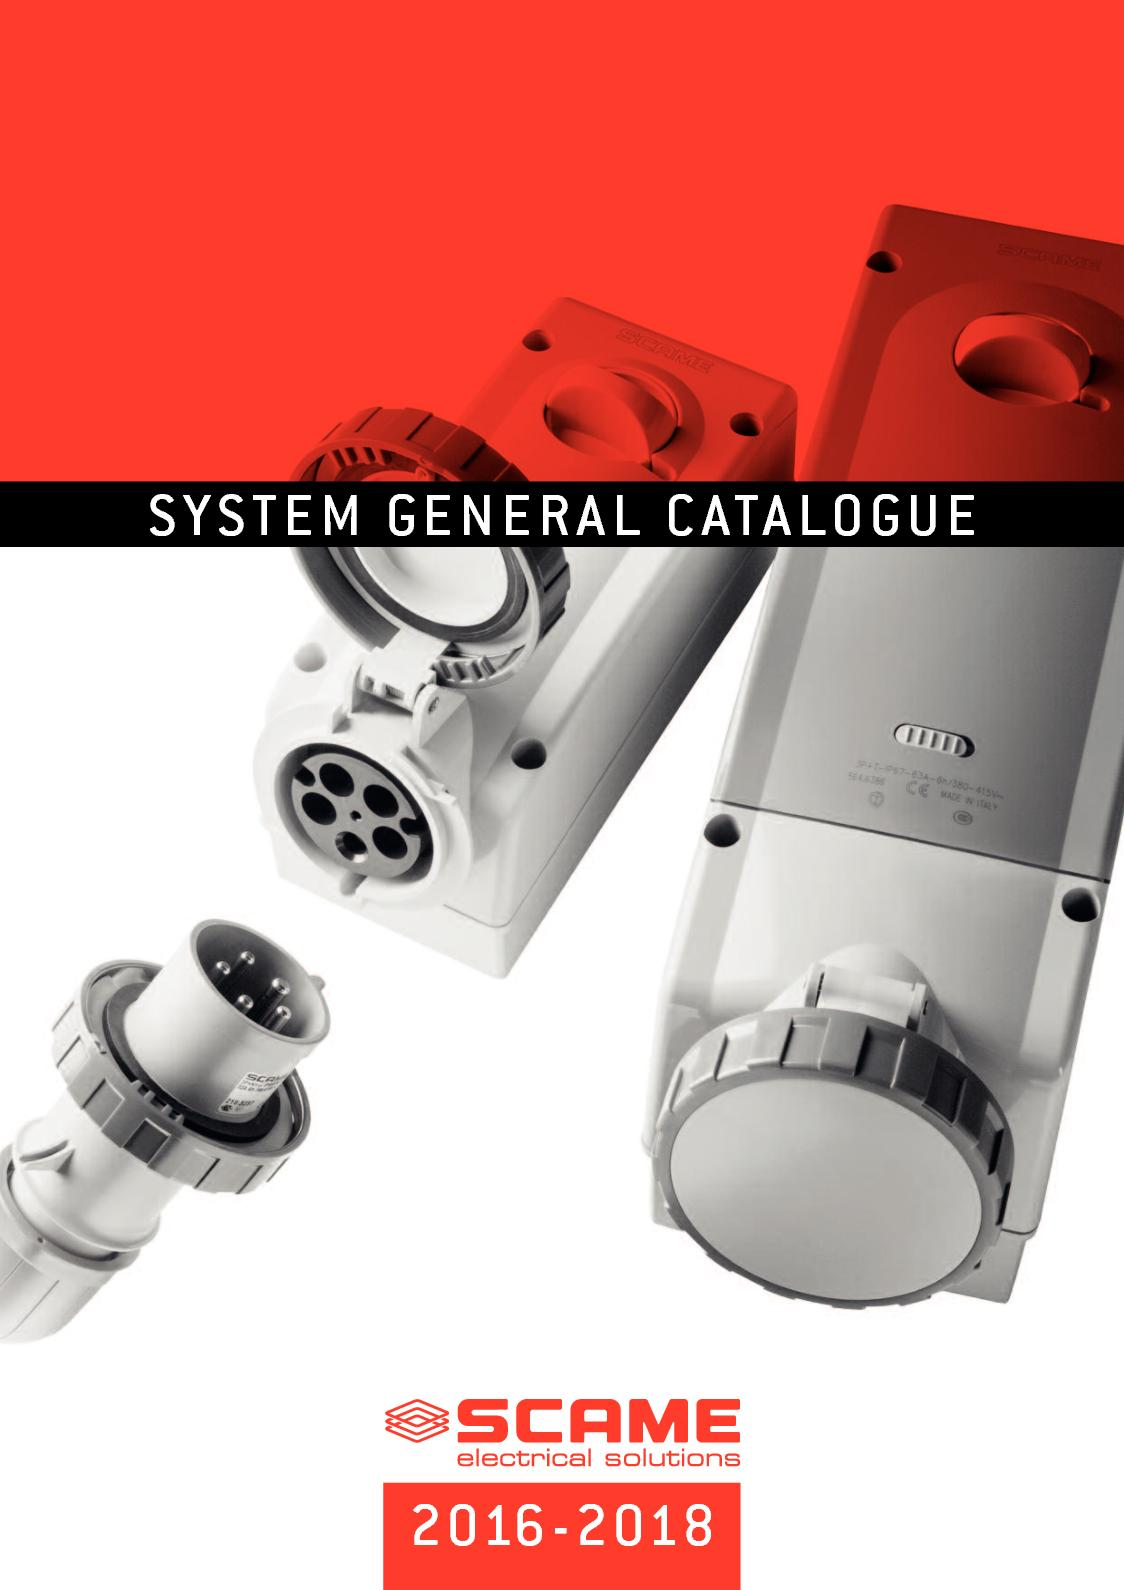 Calaméo - Scame General Catalogue 2016 2018 PART 1 by MERKOM Ltd on